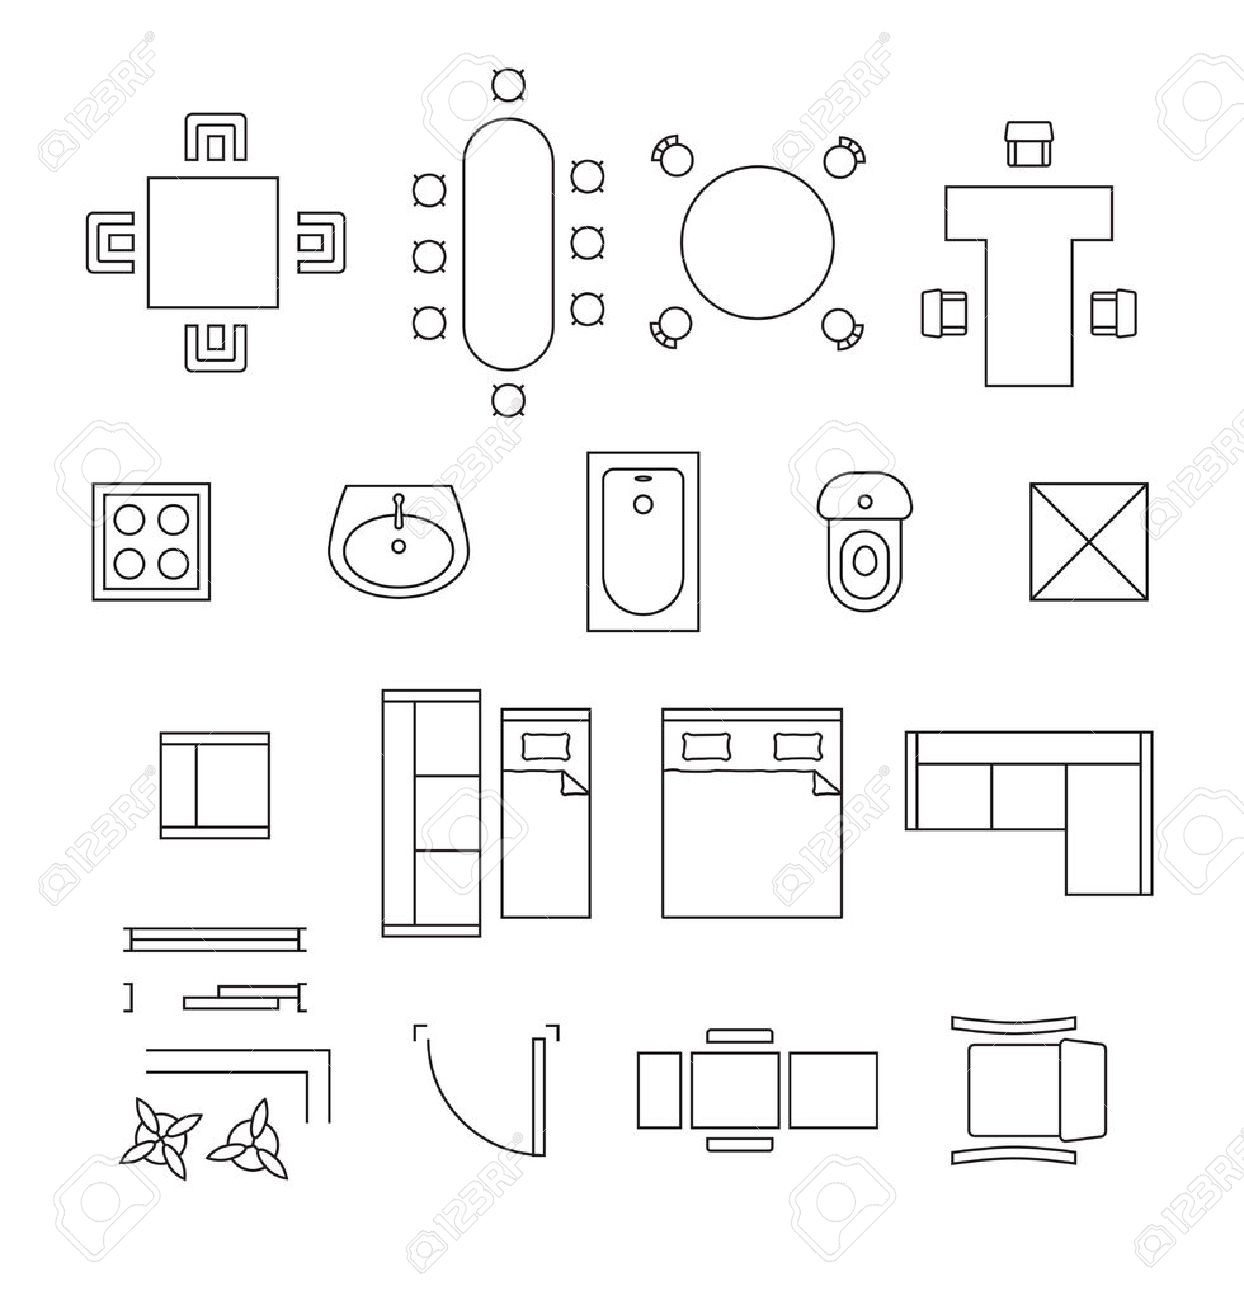 Furniture Linear Symbols Floor Plan Icons Set Interior And Royalty Free Cliparts Vectors And Stock Illustration Image 46861531